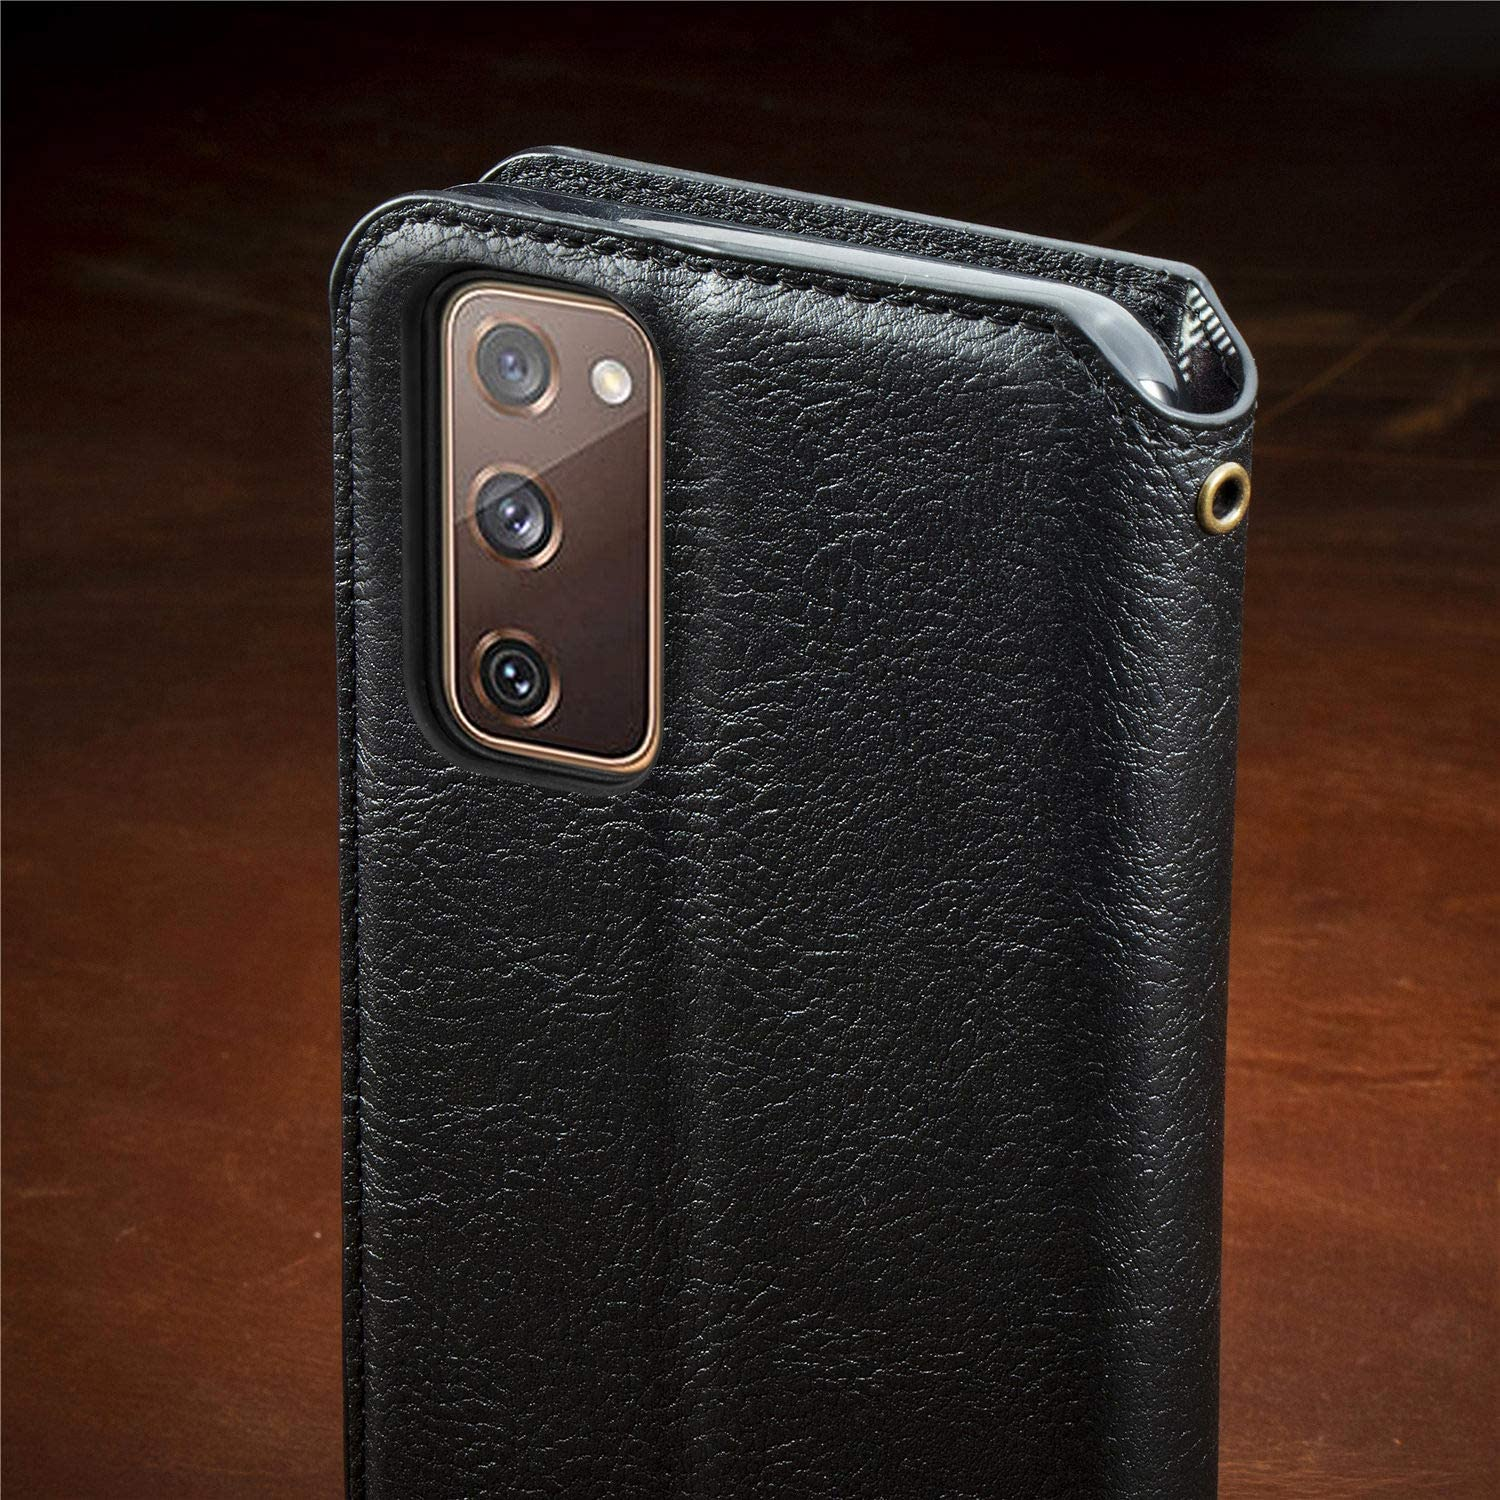 S20 FE 5G TRSDA120279 Brown Trugox Wallet Case for Samsung Galaxy S20 FE with Credit Card Holder Stand Function Flip Case Cover Men Women Protective Leather Phone Case for Galaxy S20FE